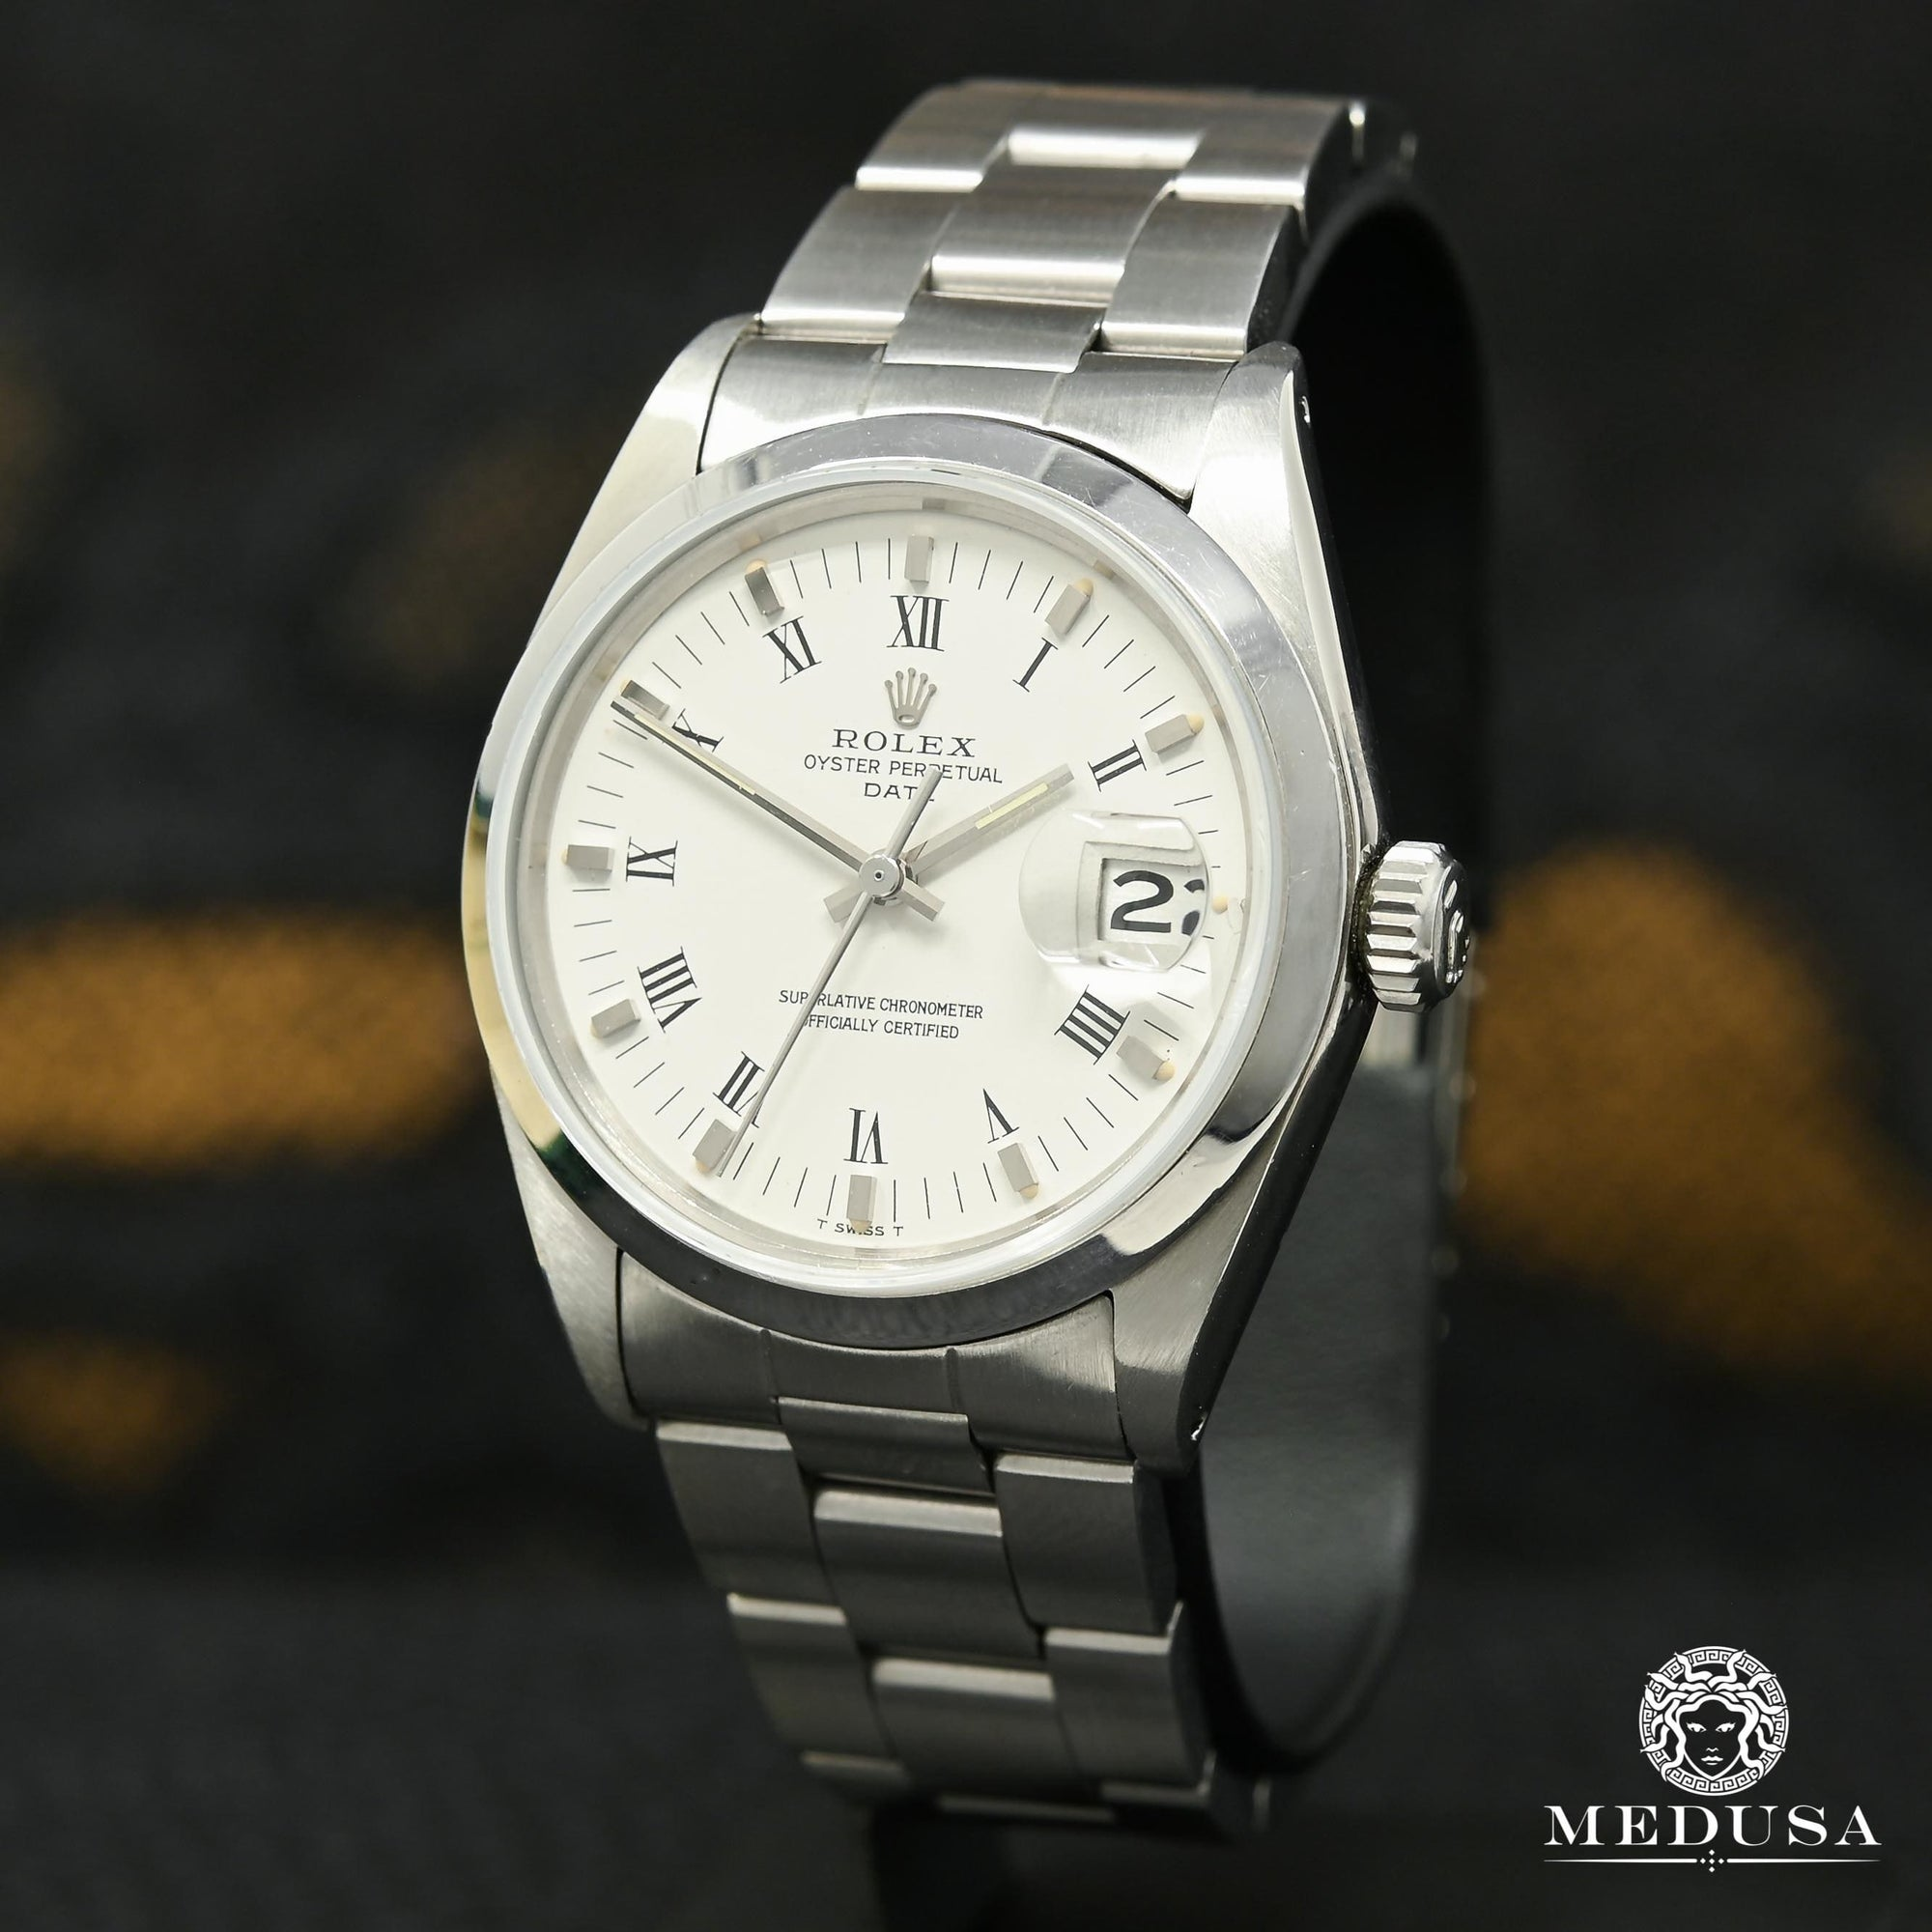 Rolex Oyster Perpetual Date 34mm - White